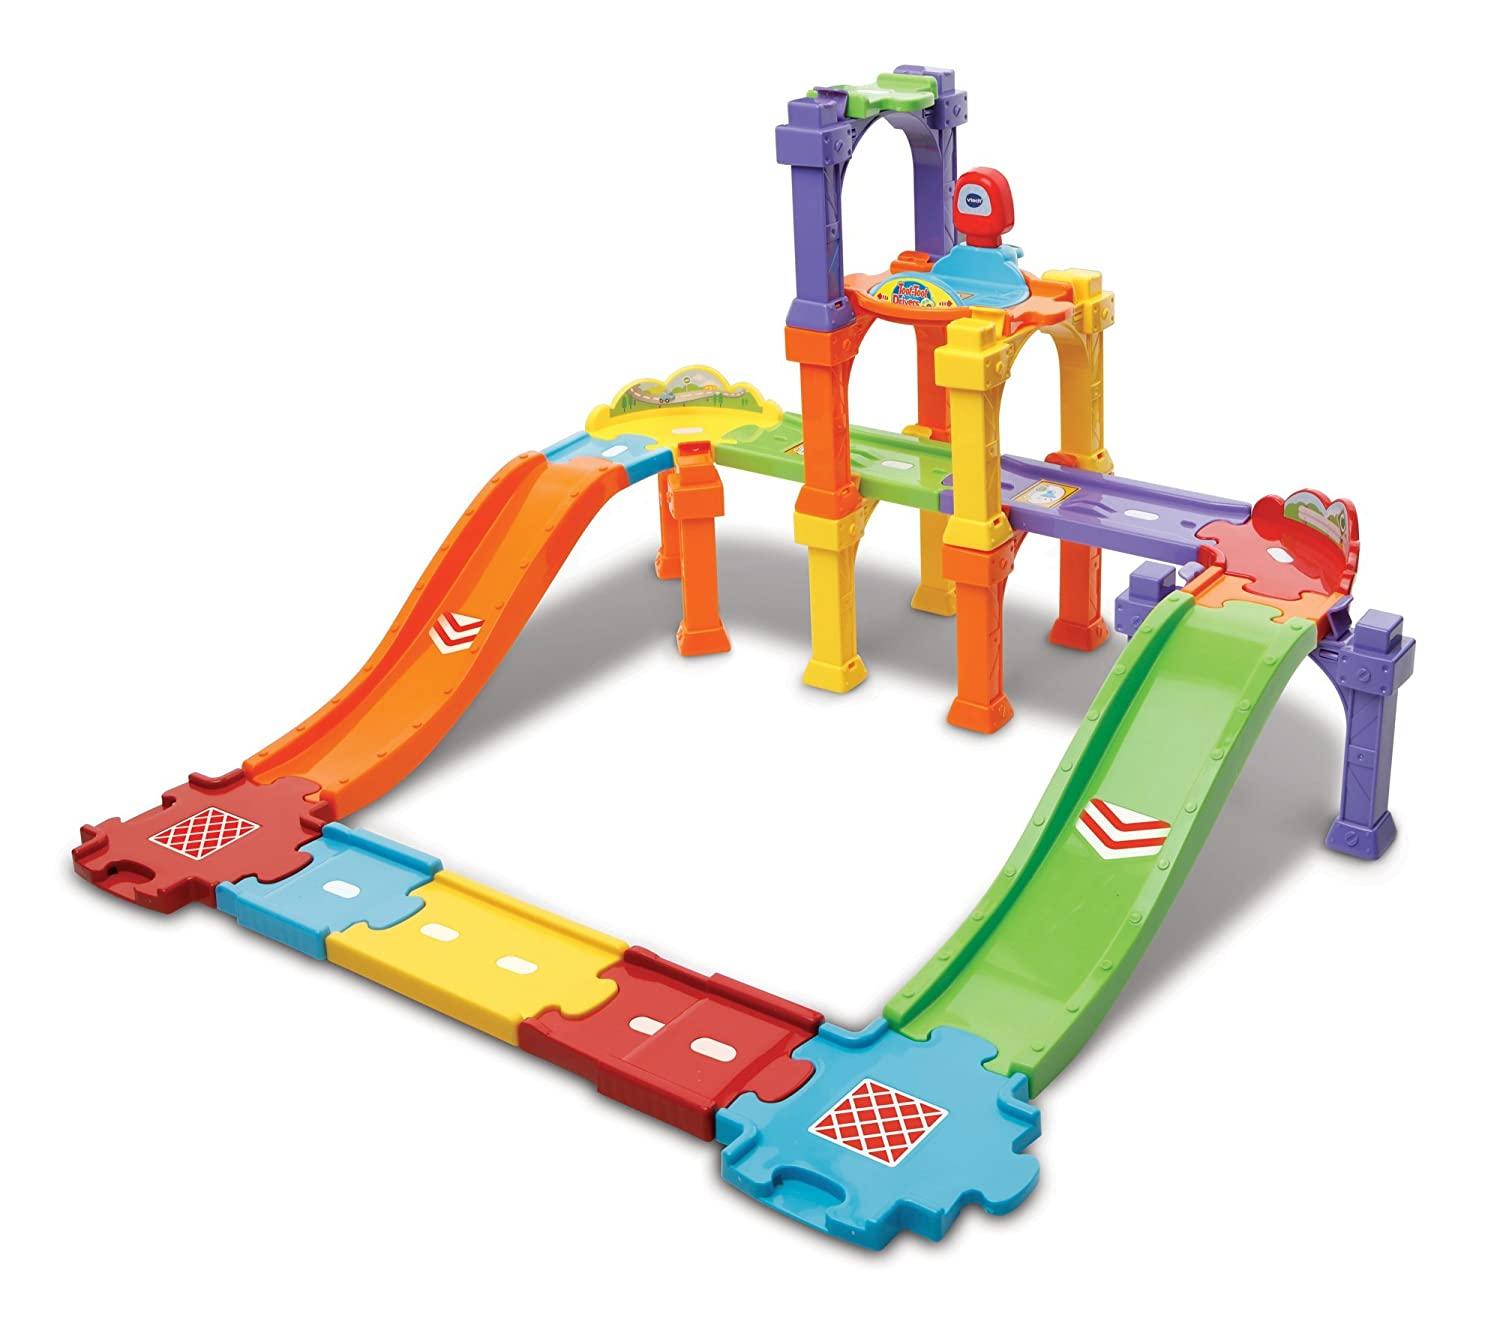 VTech Baby Toot-Toot Drivers Ultimate Track Set Toy Play Set Multi Coloured